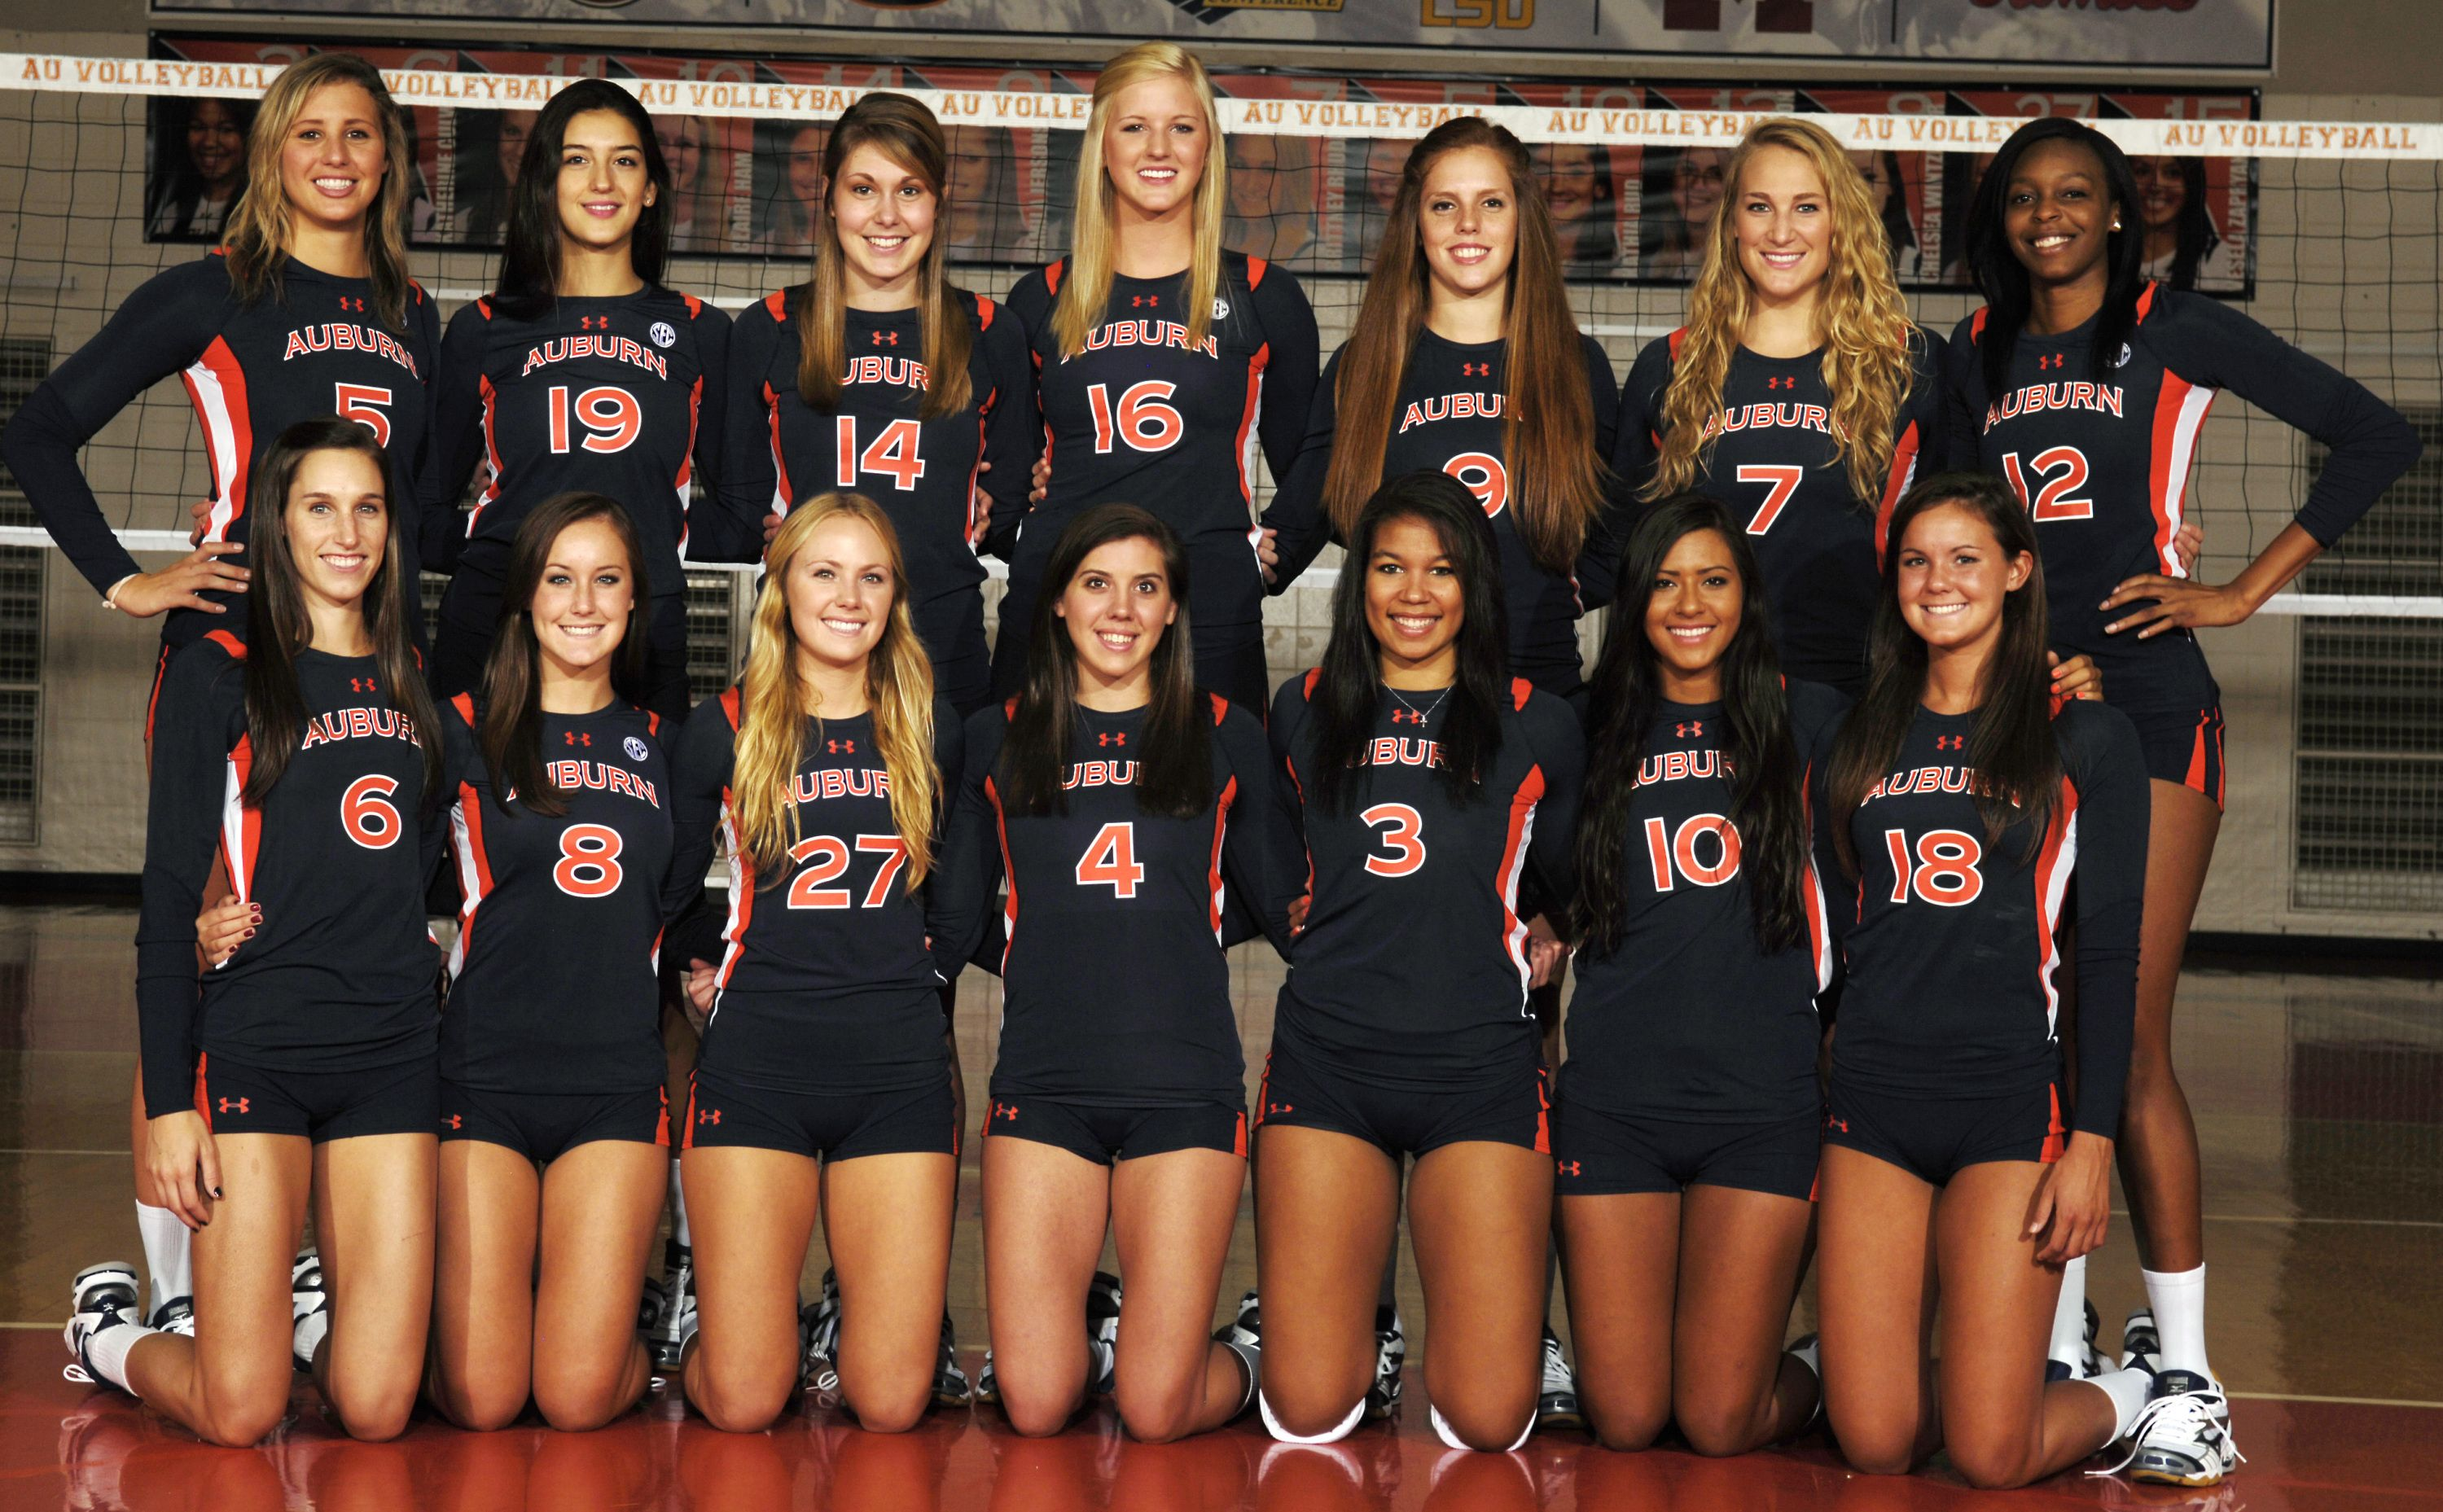 Women S Volleyball Team Women Volleyball Volleyball Mom Volleyball Team